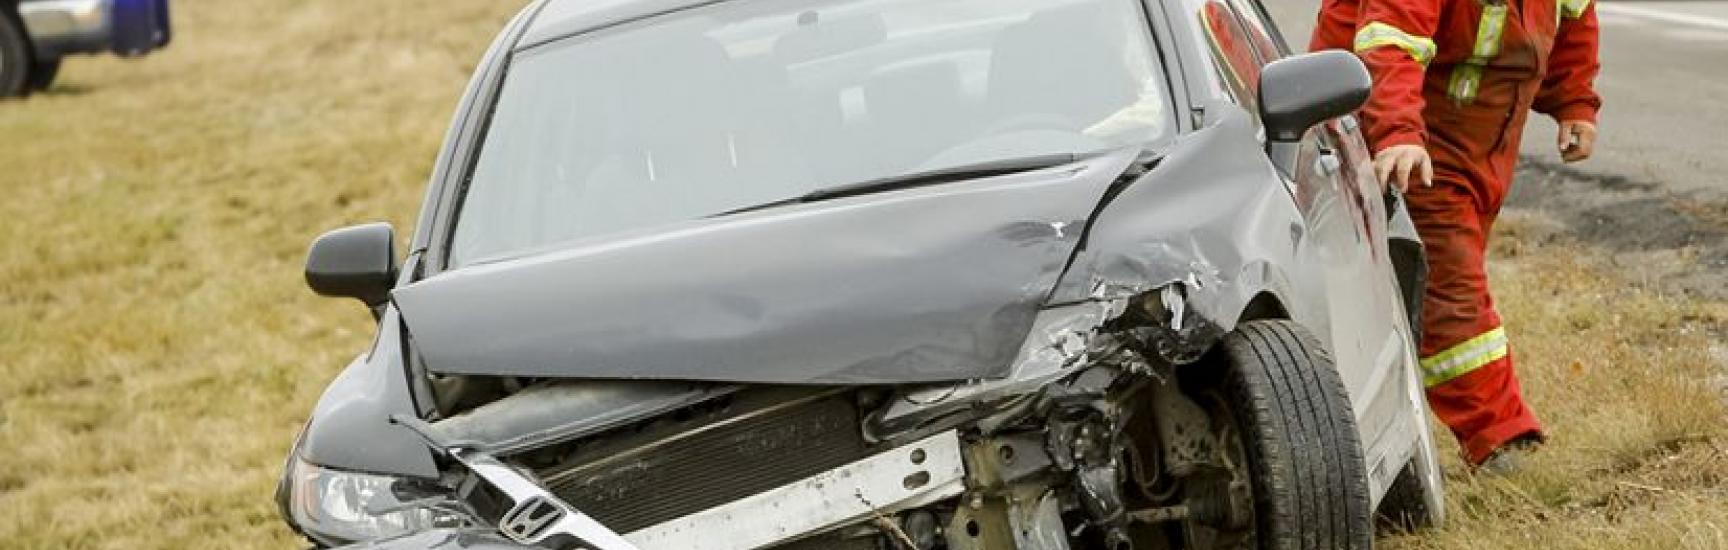 crunched car